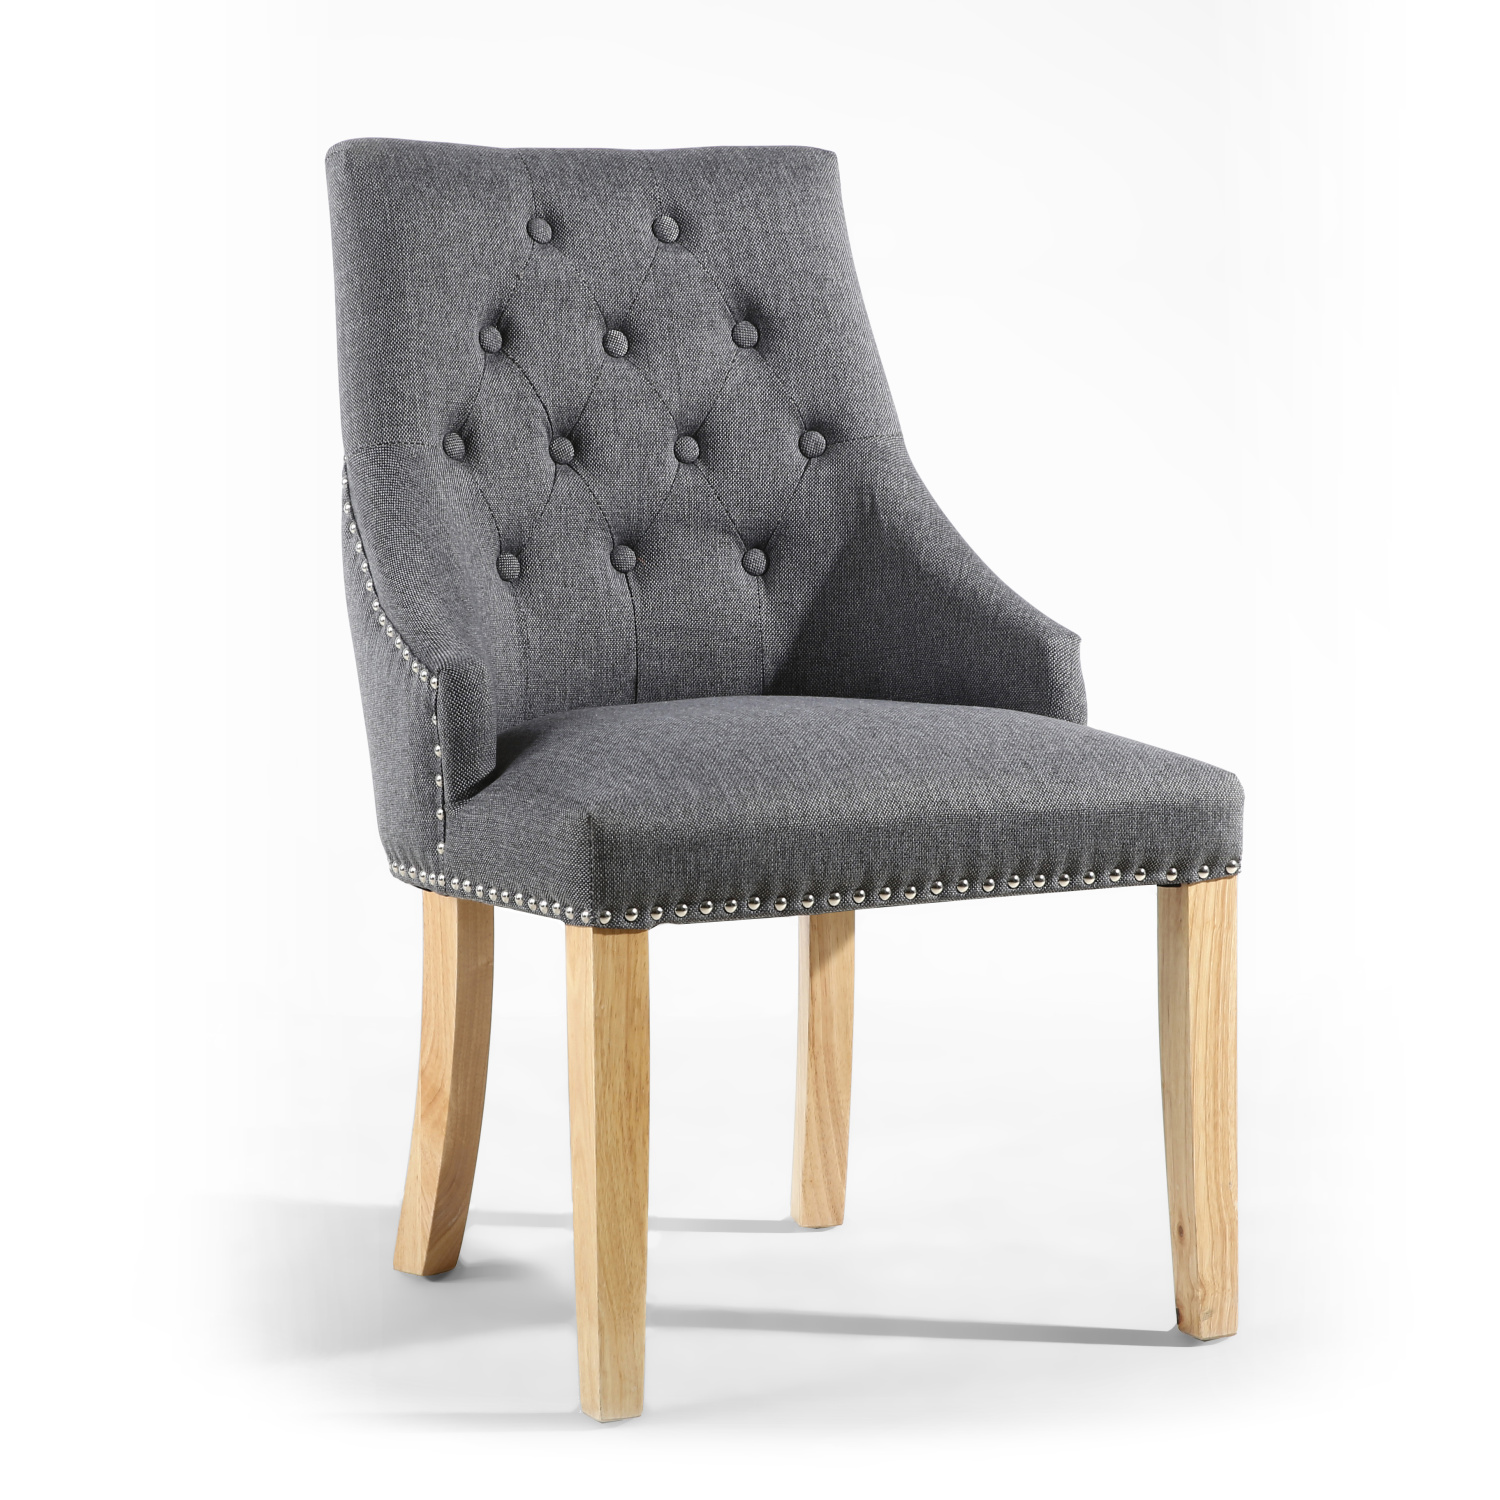 Steel grey accent chair - £124.20